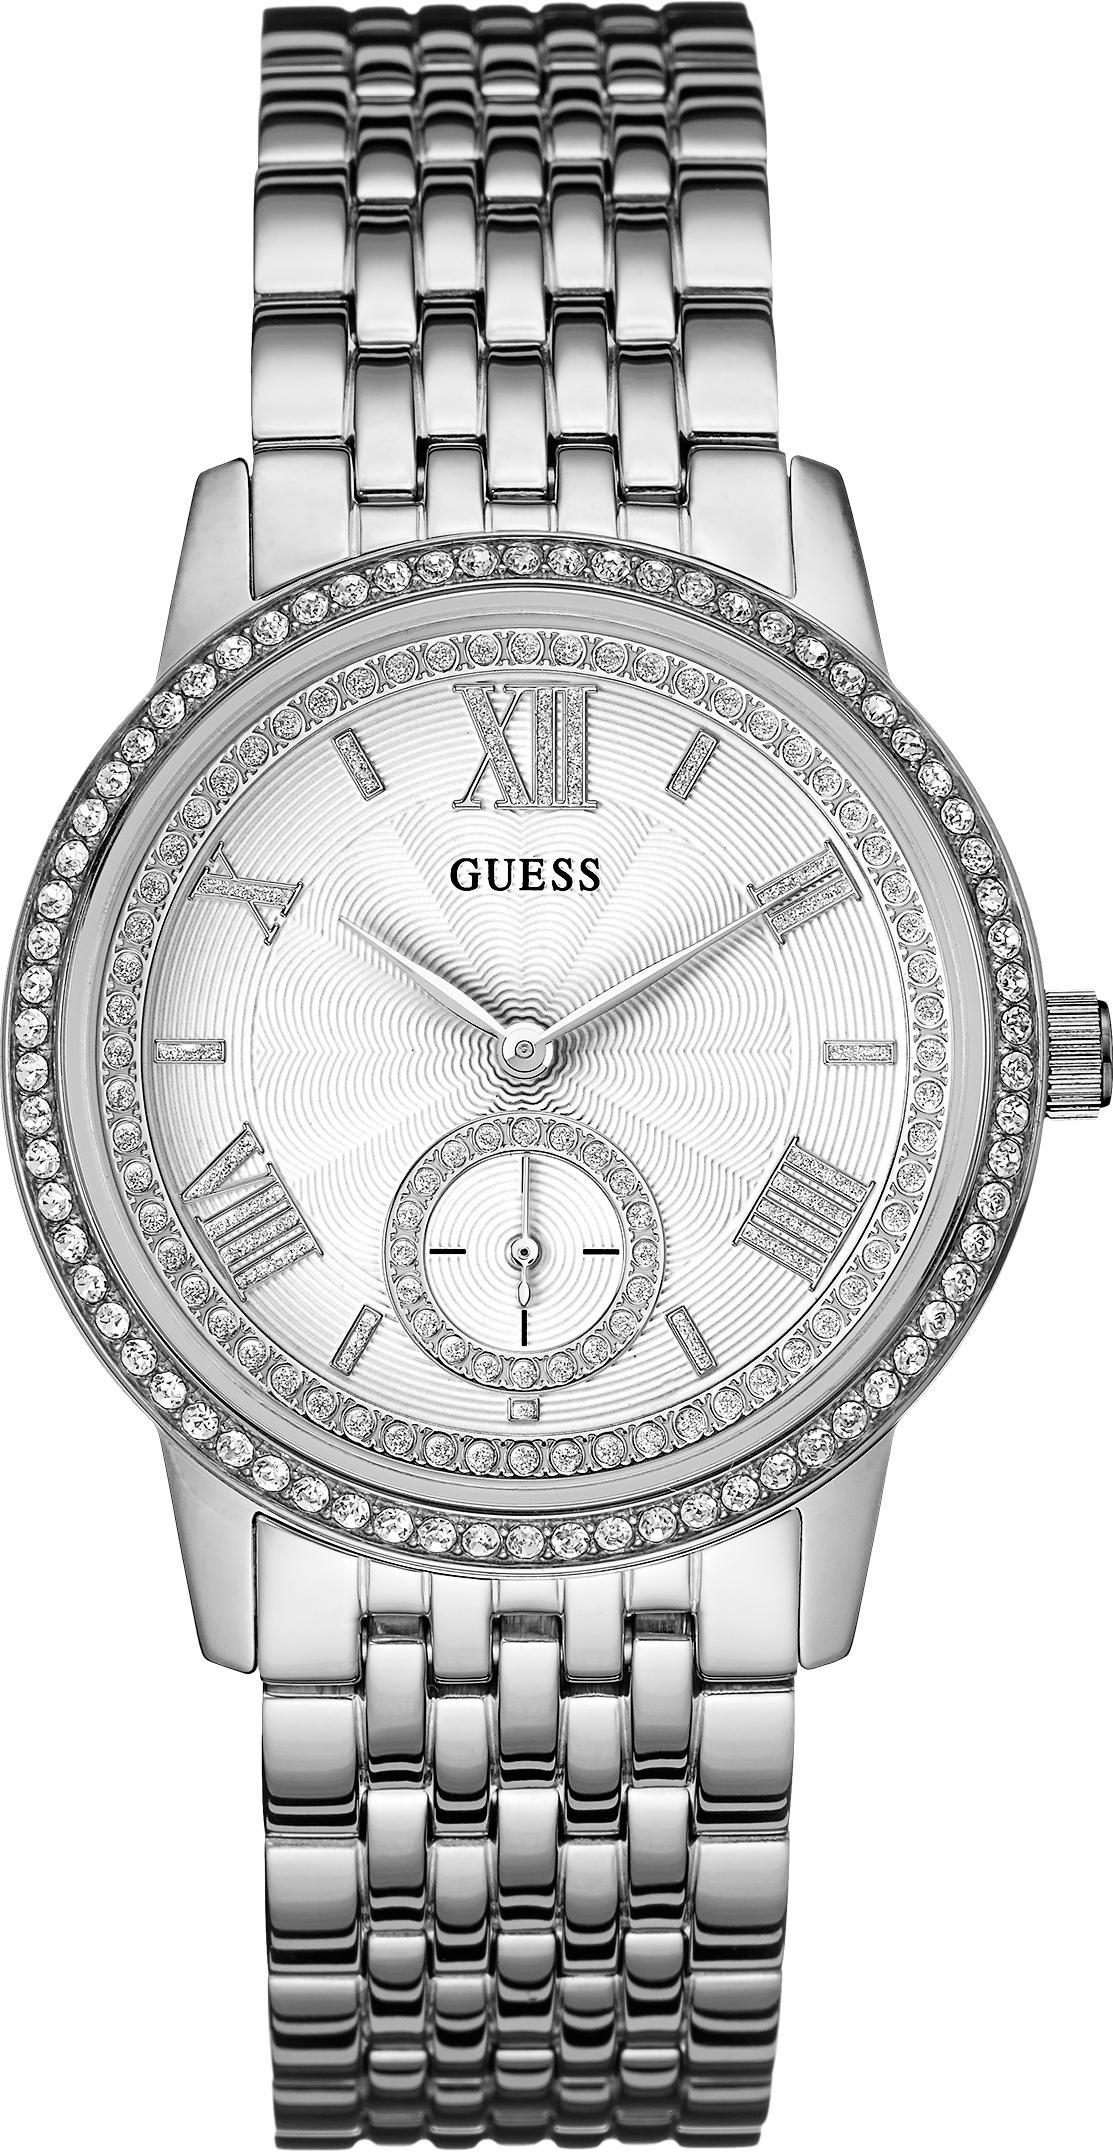 Guess Quarzuhr »W0573L1«